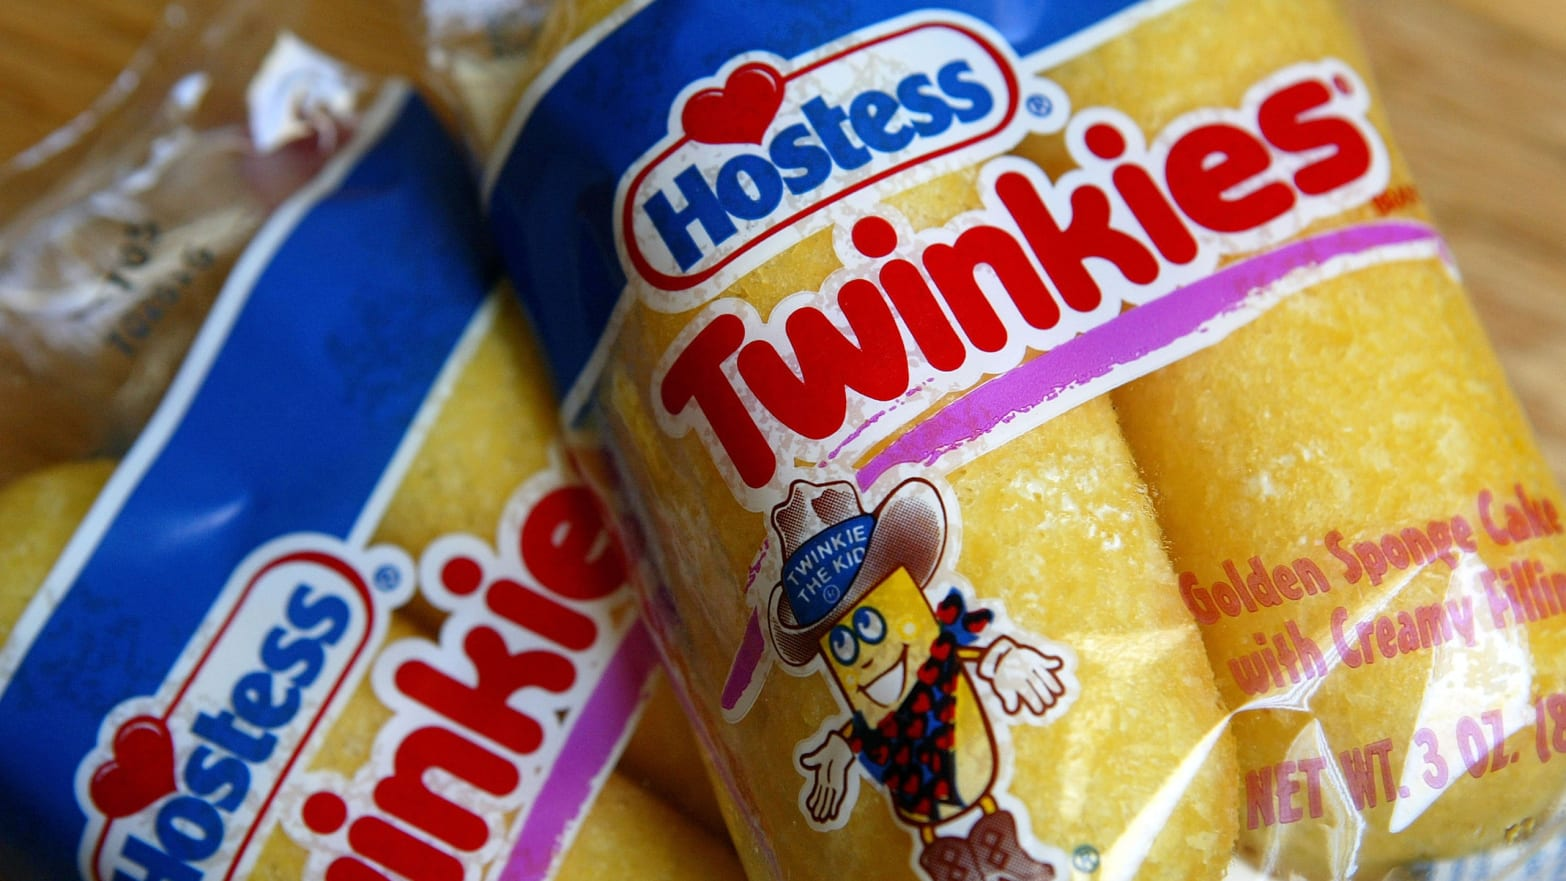 Twinkies, Ho Hos, and Other Memorable Snacks From Hostess